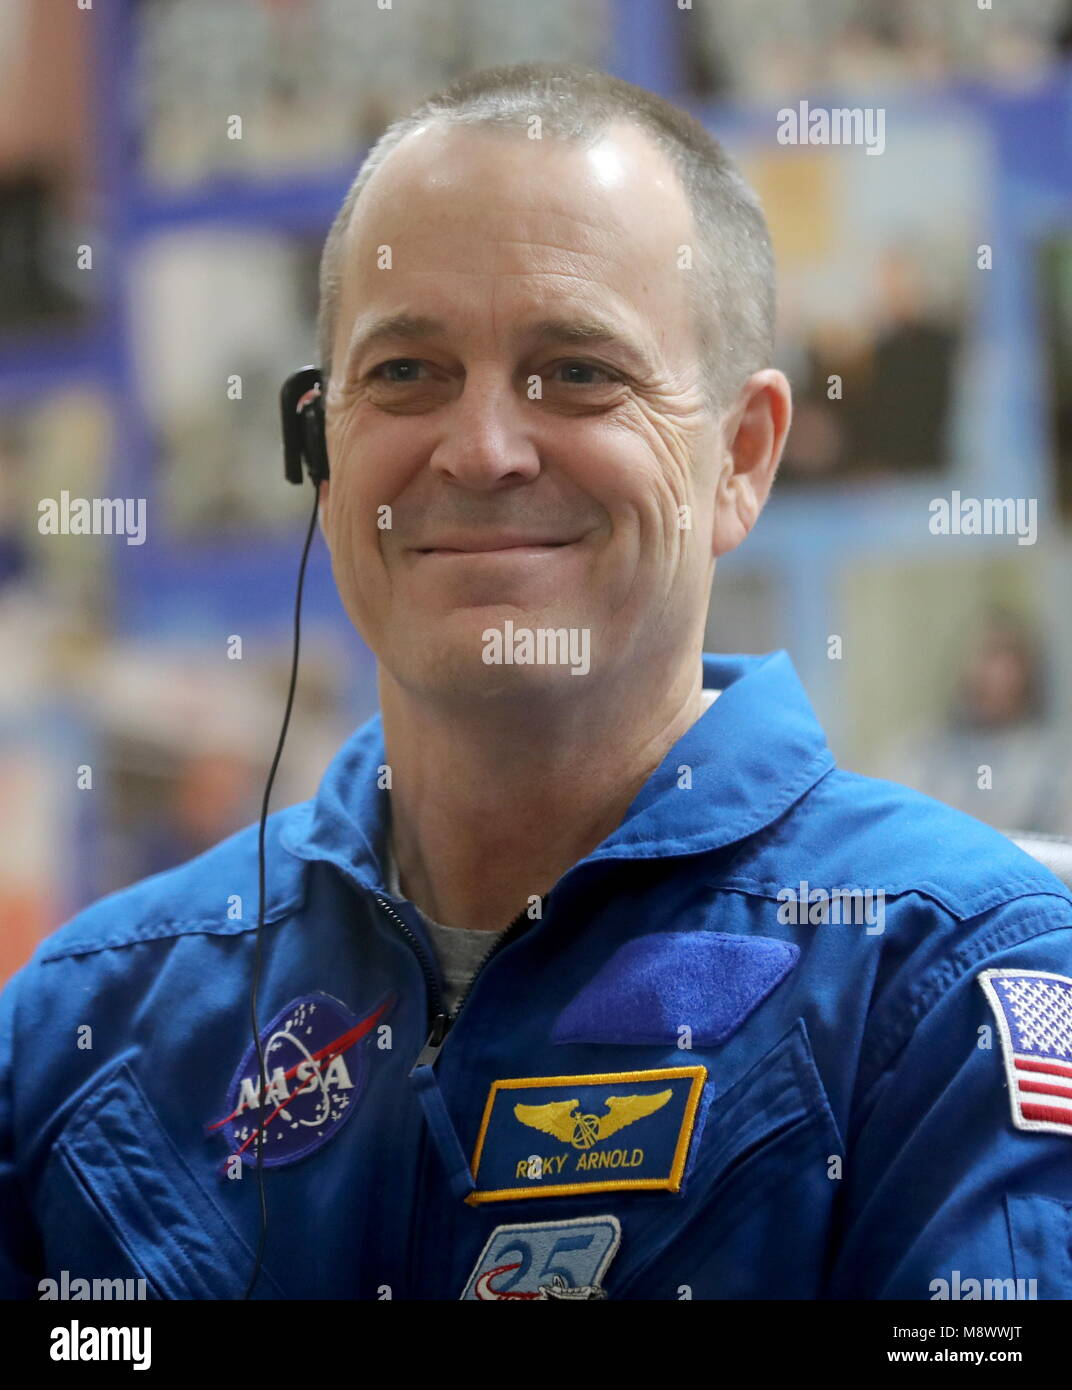 Baikonur, Kazakhstan. 20th Mar, 2018. BAIKONUR, KAZAKHSTAN - MARCH 20, 2018: NASA astronaut Richard Arnold smiles - Stock Image